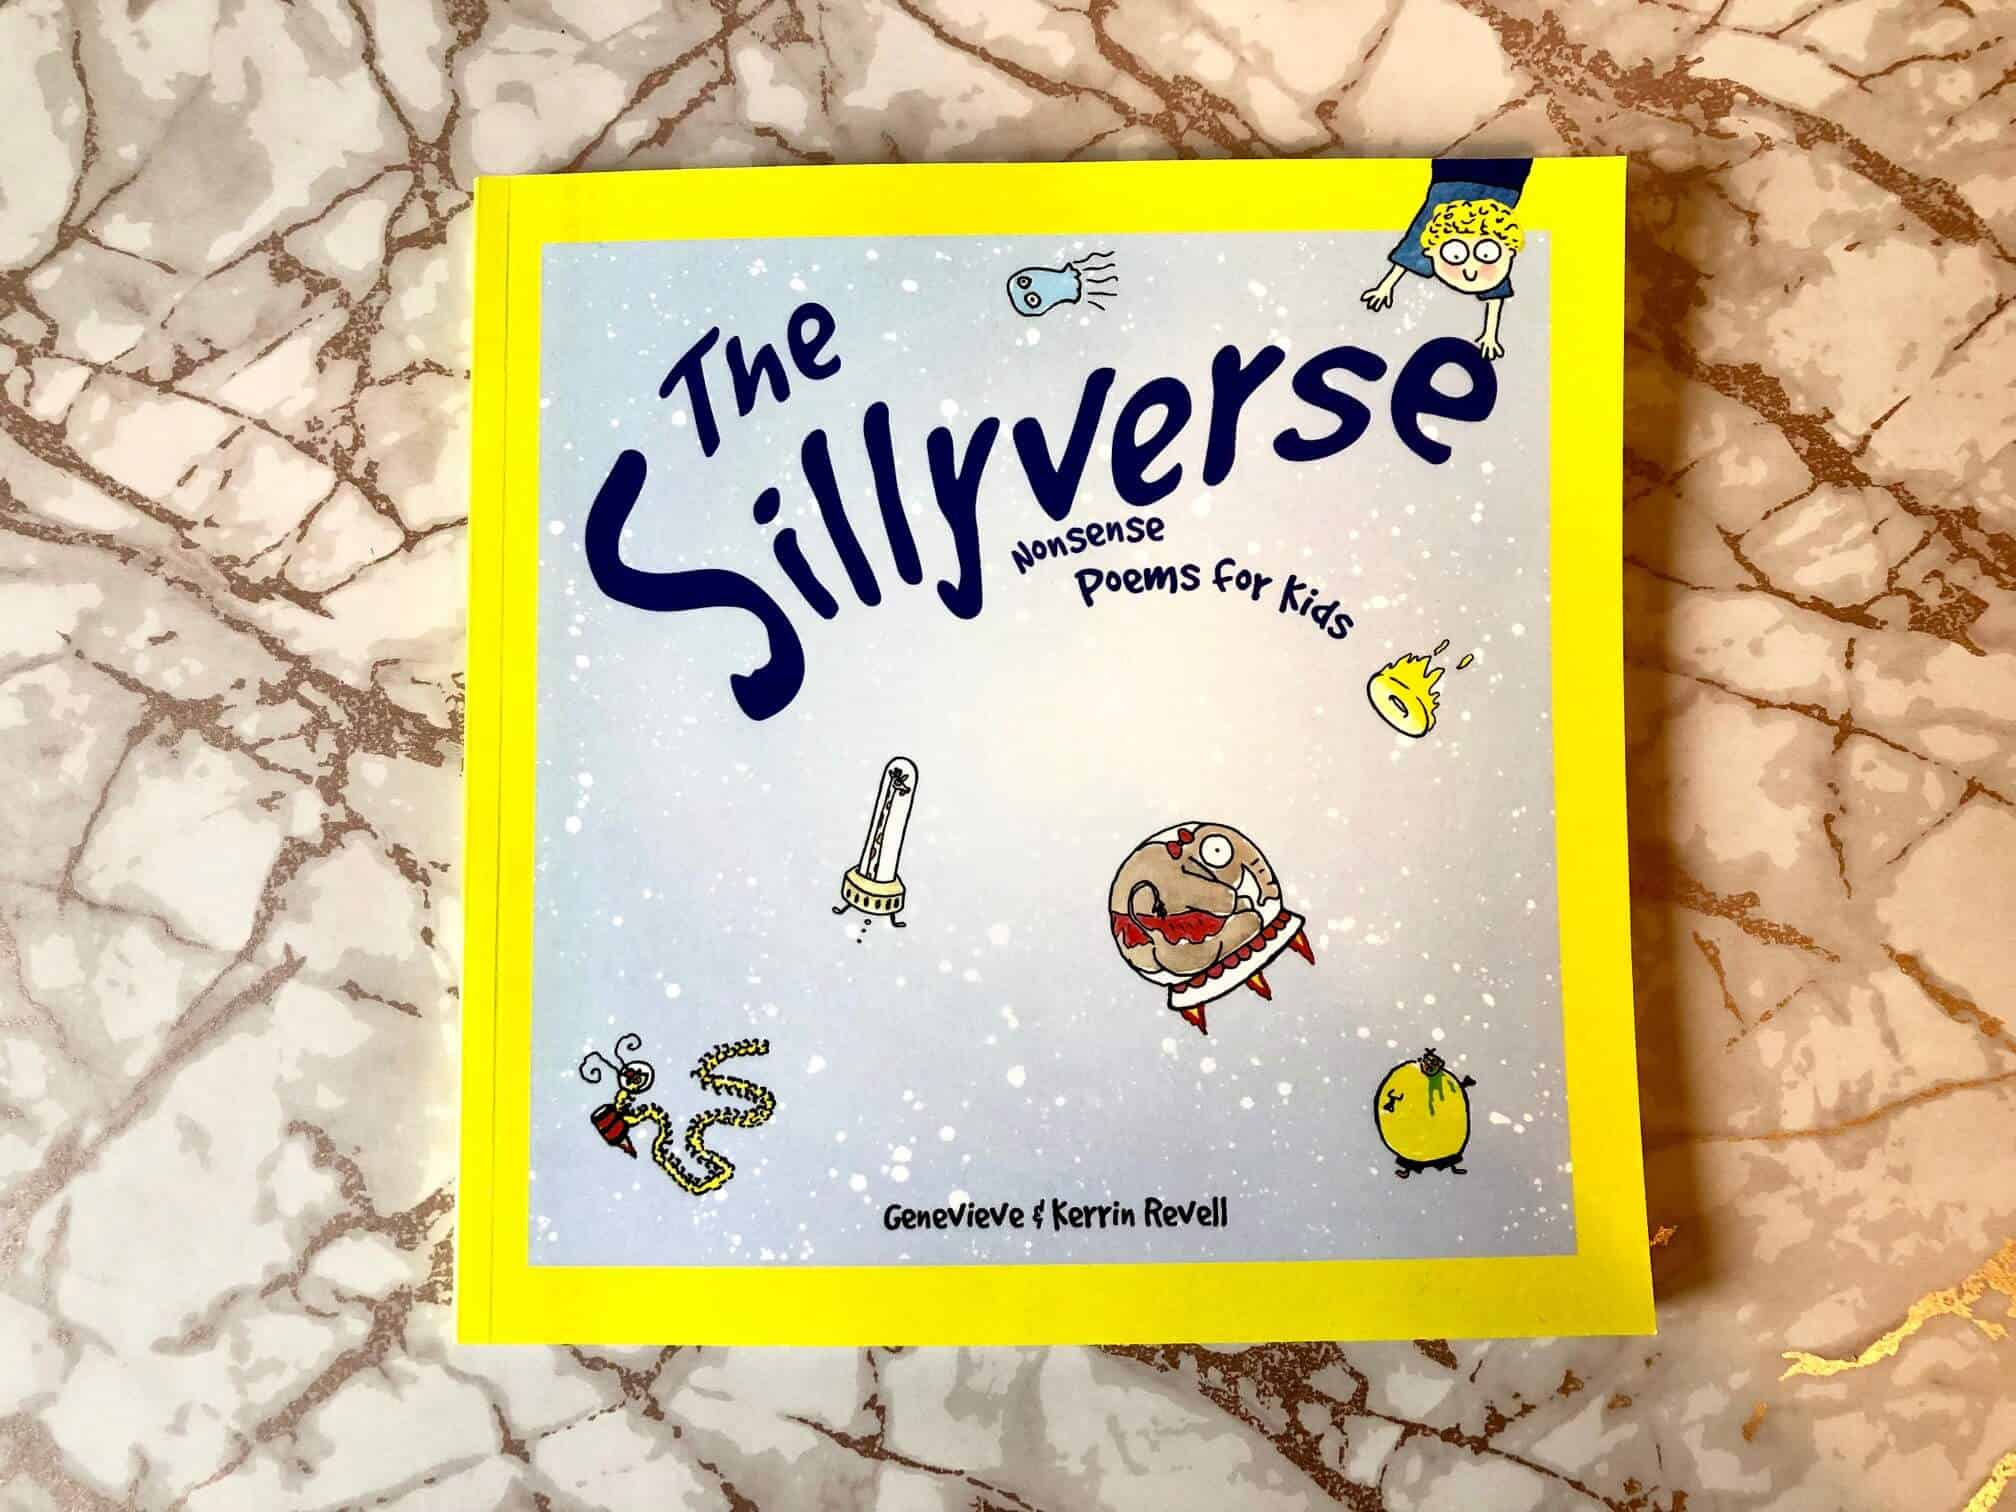 Book Review: The Sillyverse by Genevieve and Kerrin Revell